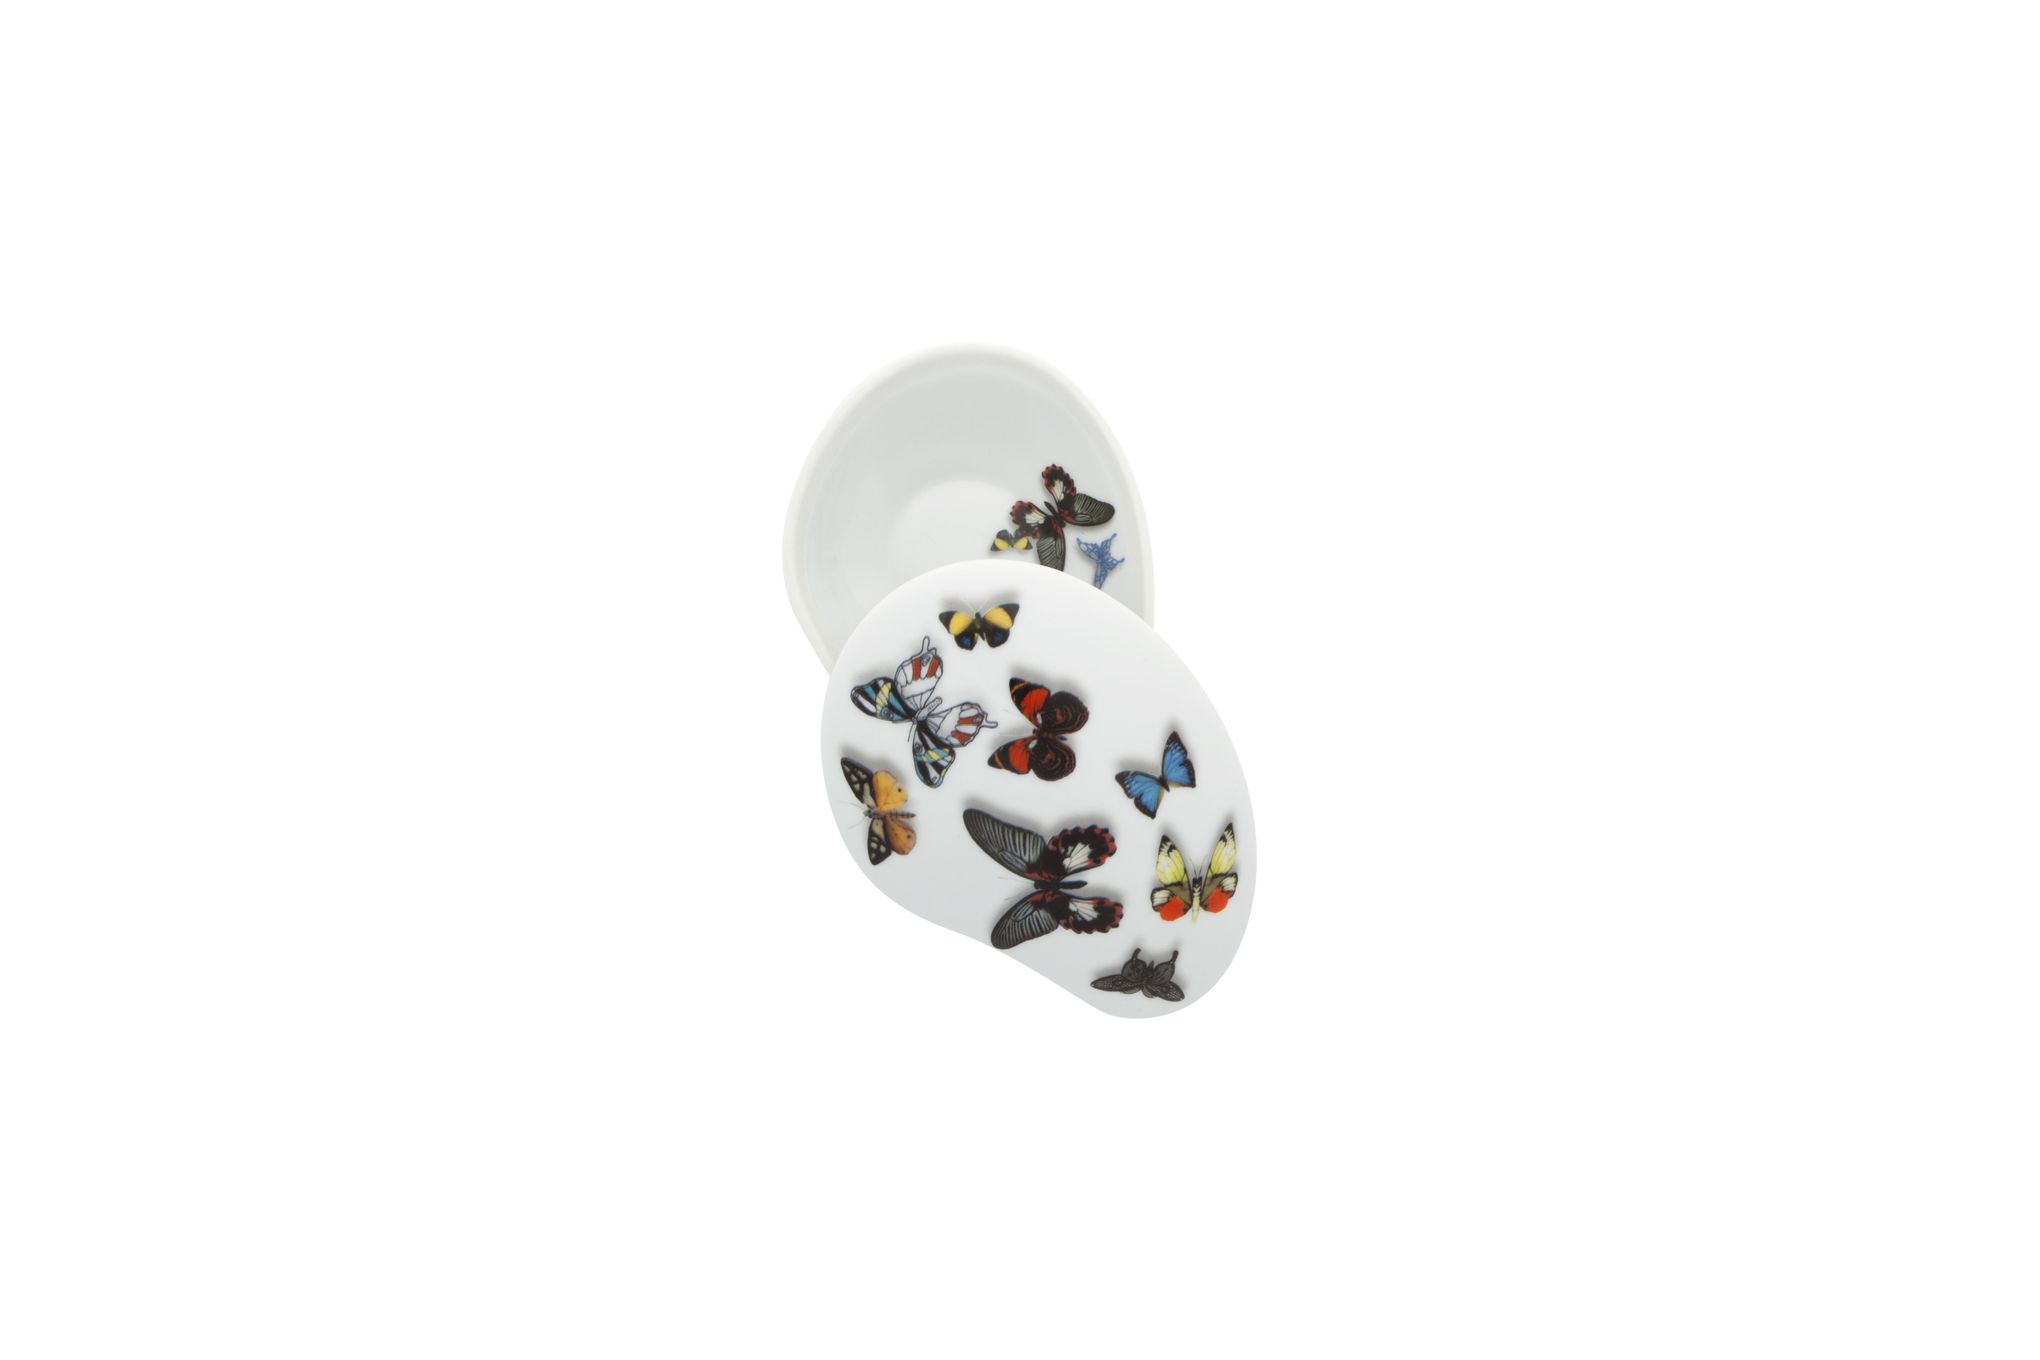 Christian Lacroix Butterfly Parade Box Oxygen 13.5 x 9.5cm thumb 2